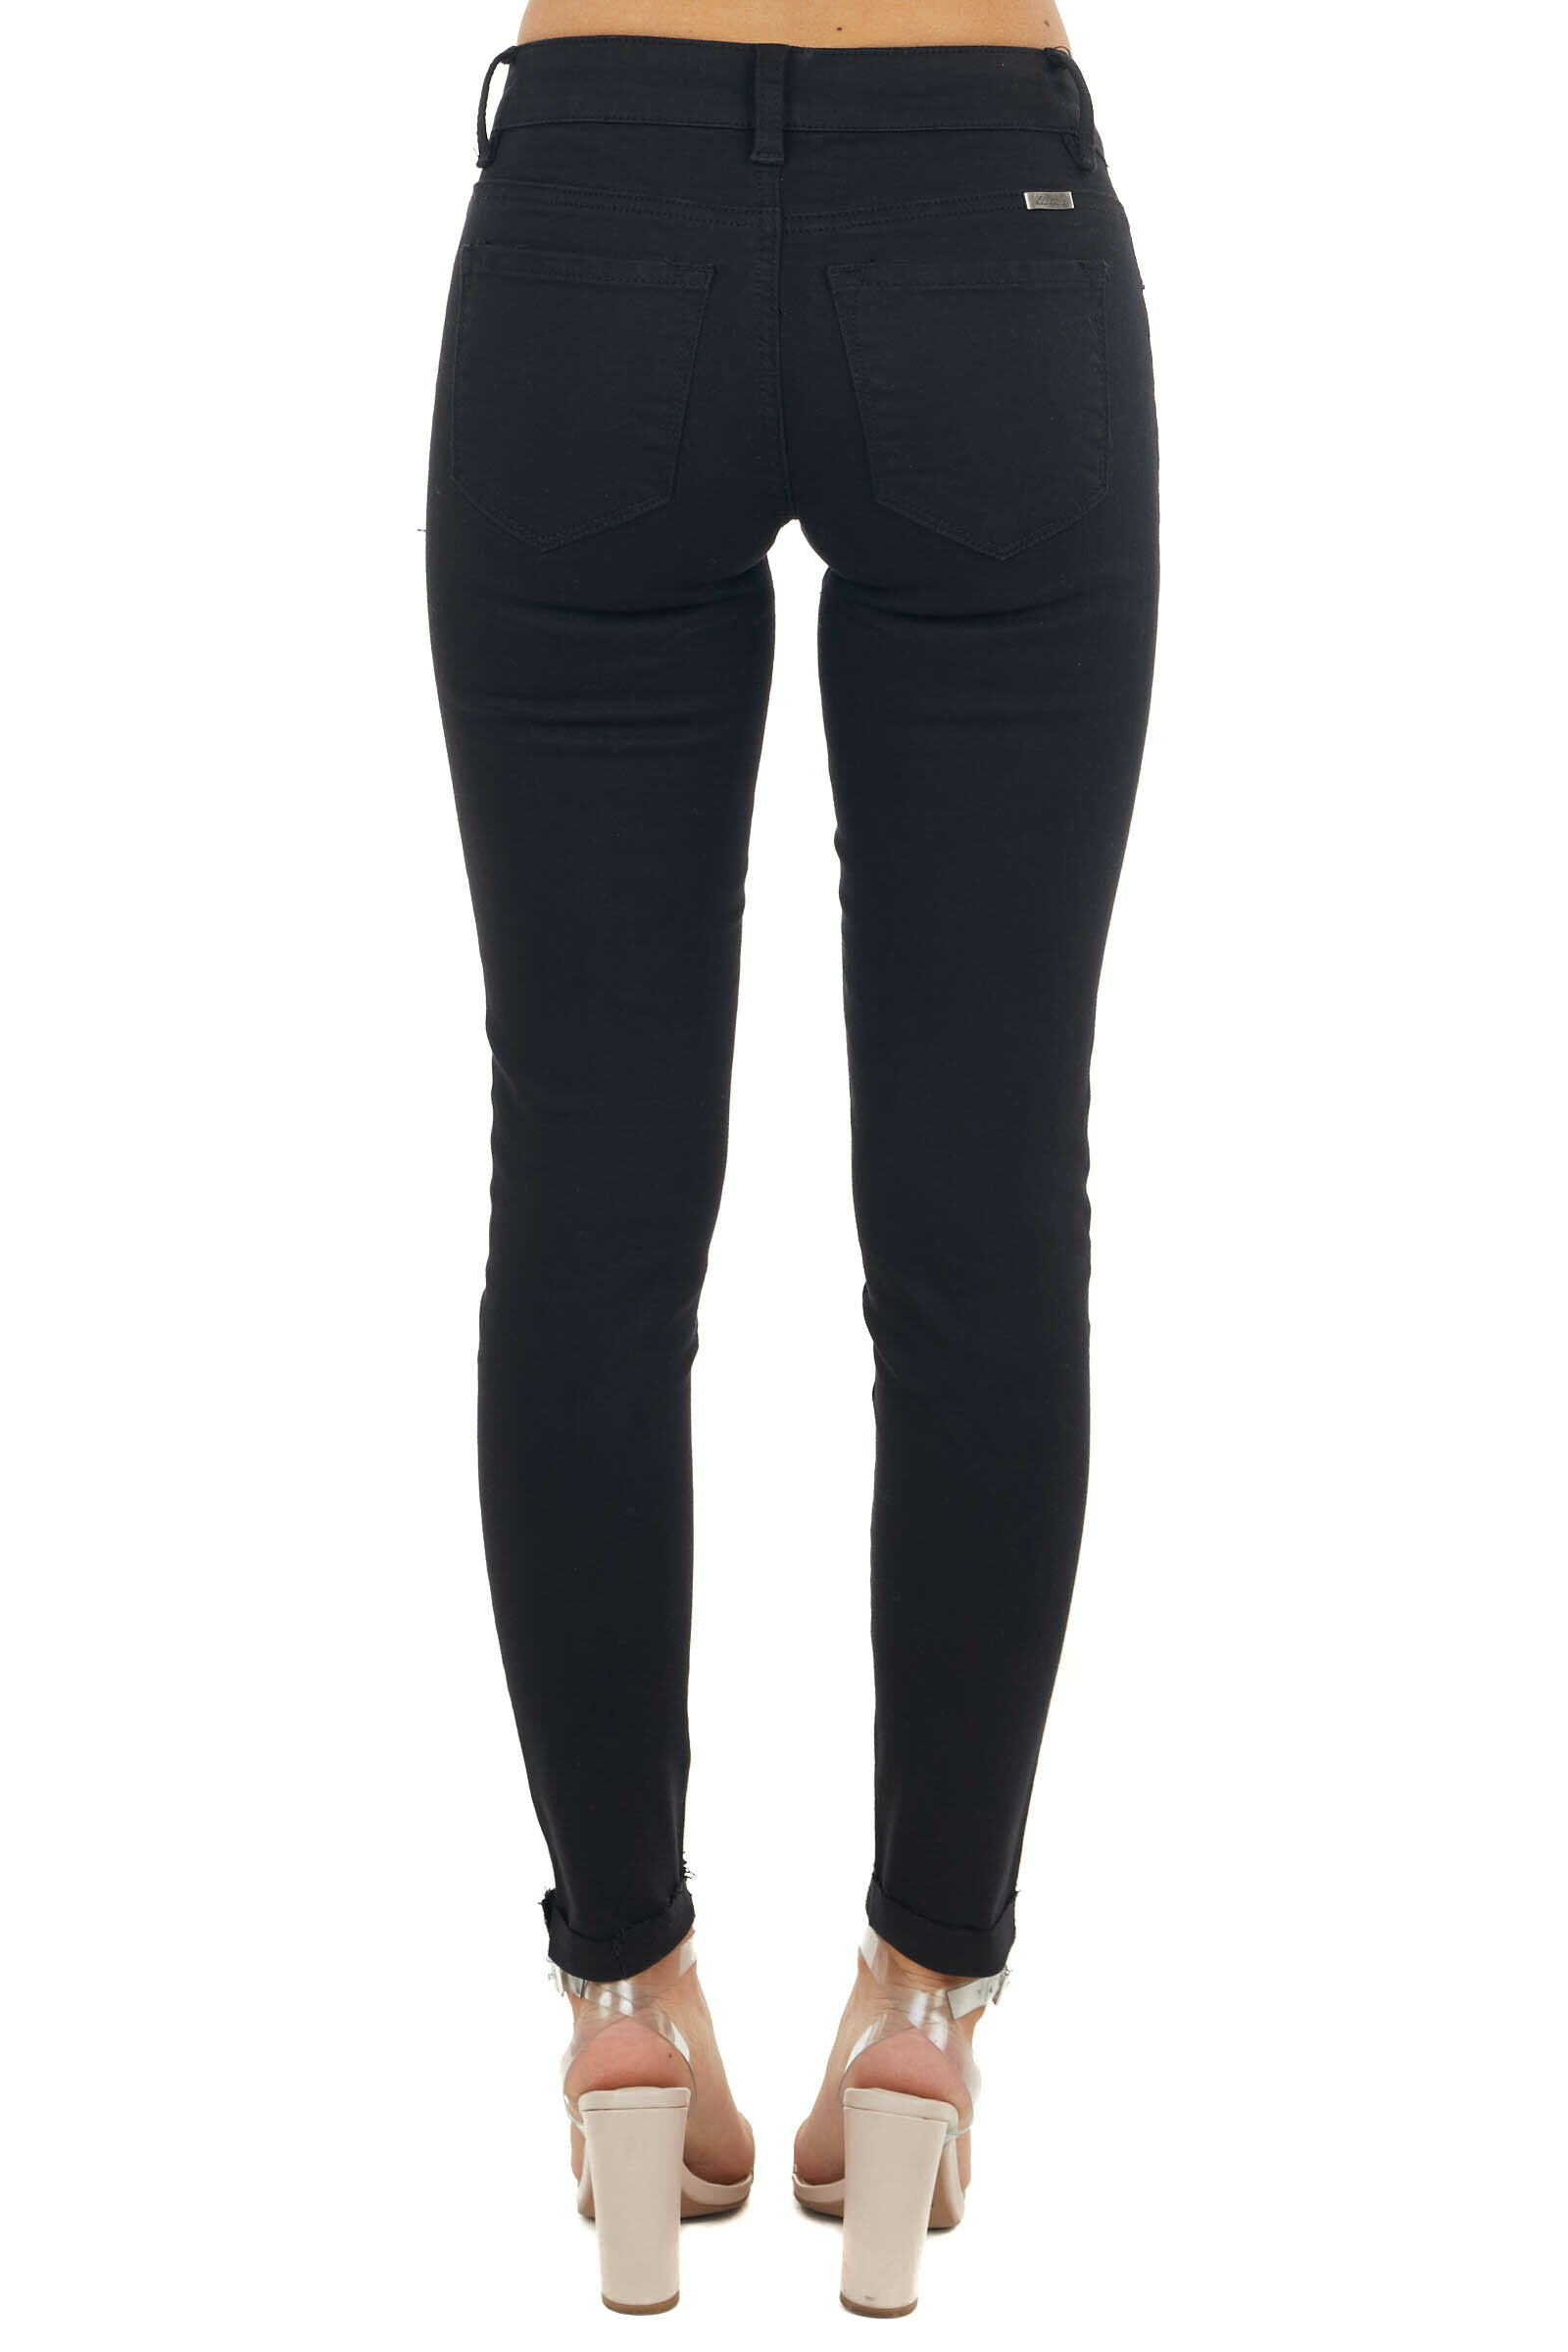 Black Mid Rise Distressed Jeans with Raw Folded Cuff